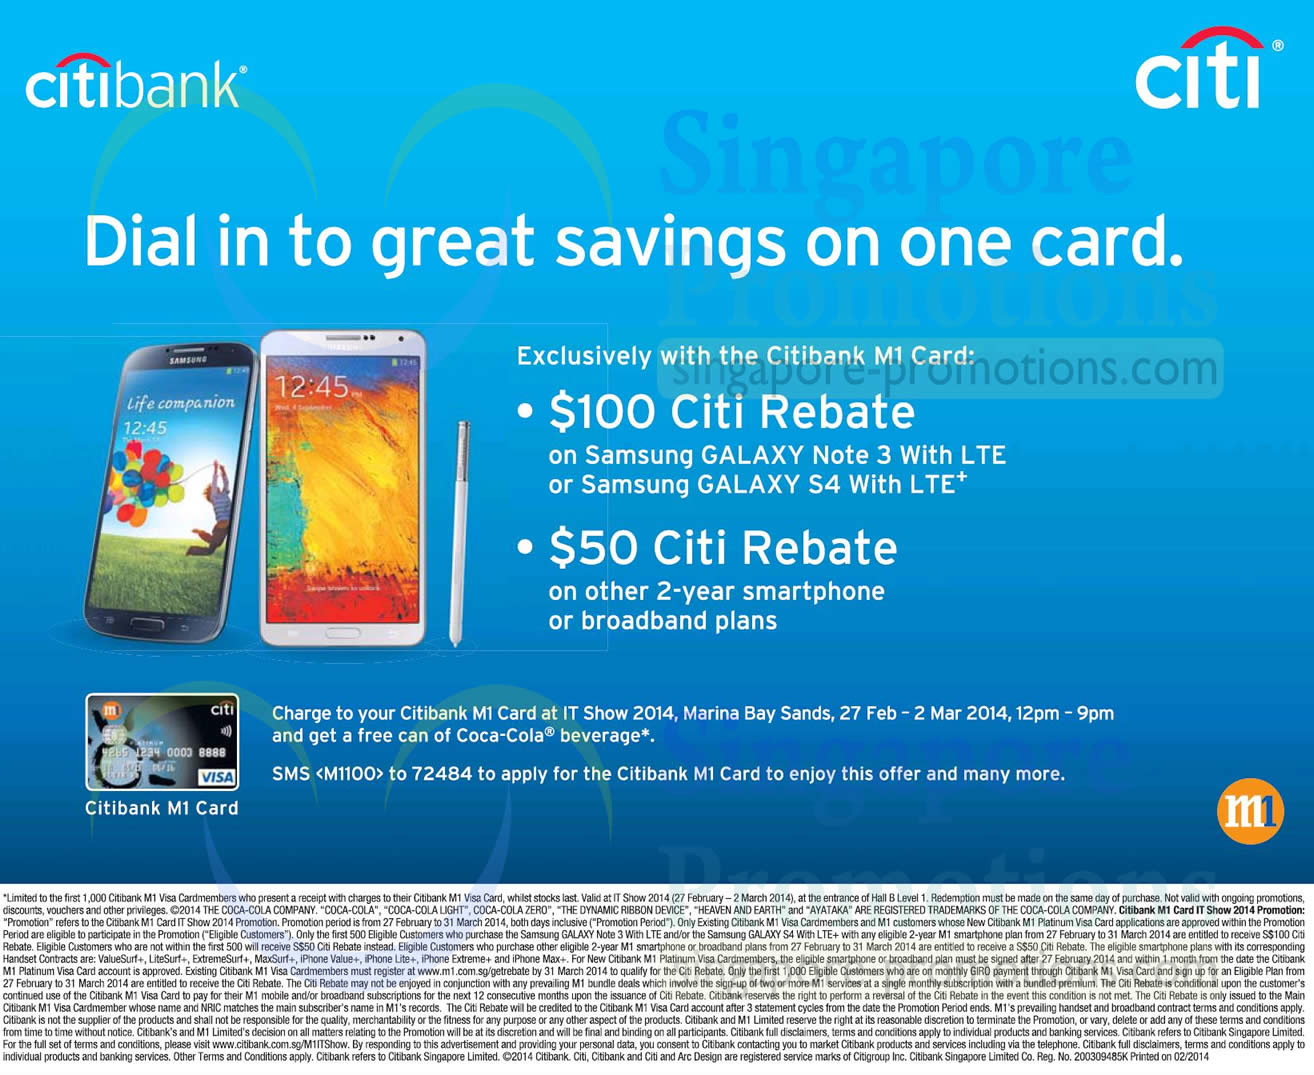 Citibank Promotions are available nationwide with cash bonuses worth $, $, $, and $ To earn the bonus, all you need to do is open an eligible checking account and meet certain requirements like maintaining a minimum balance and setup direct deposit.